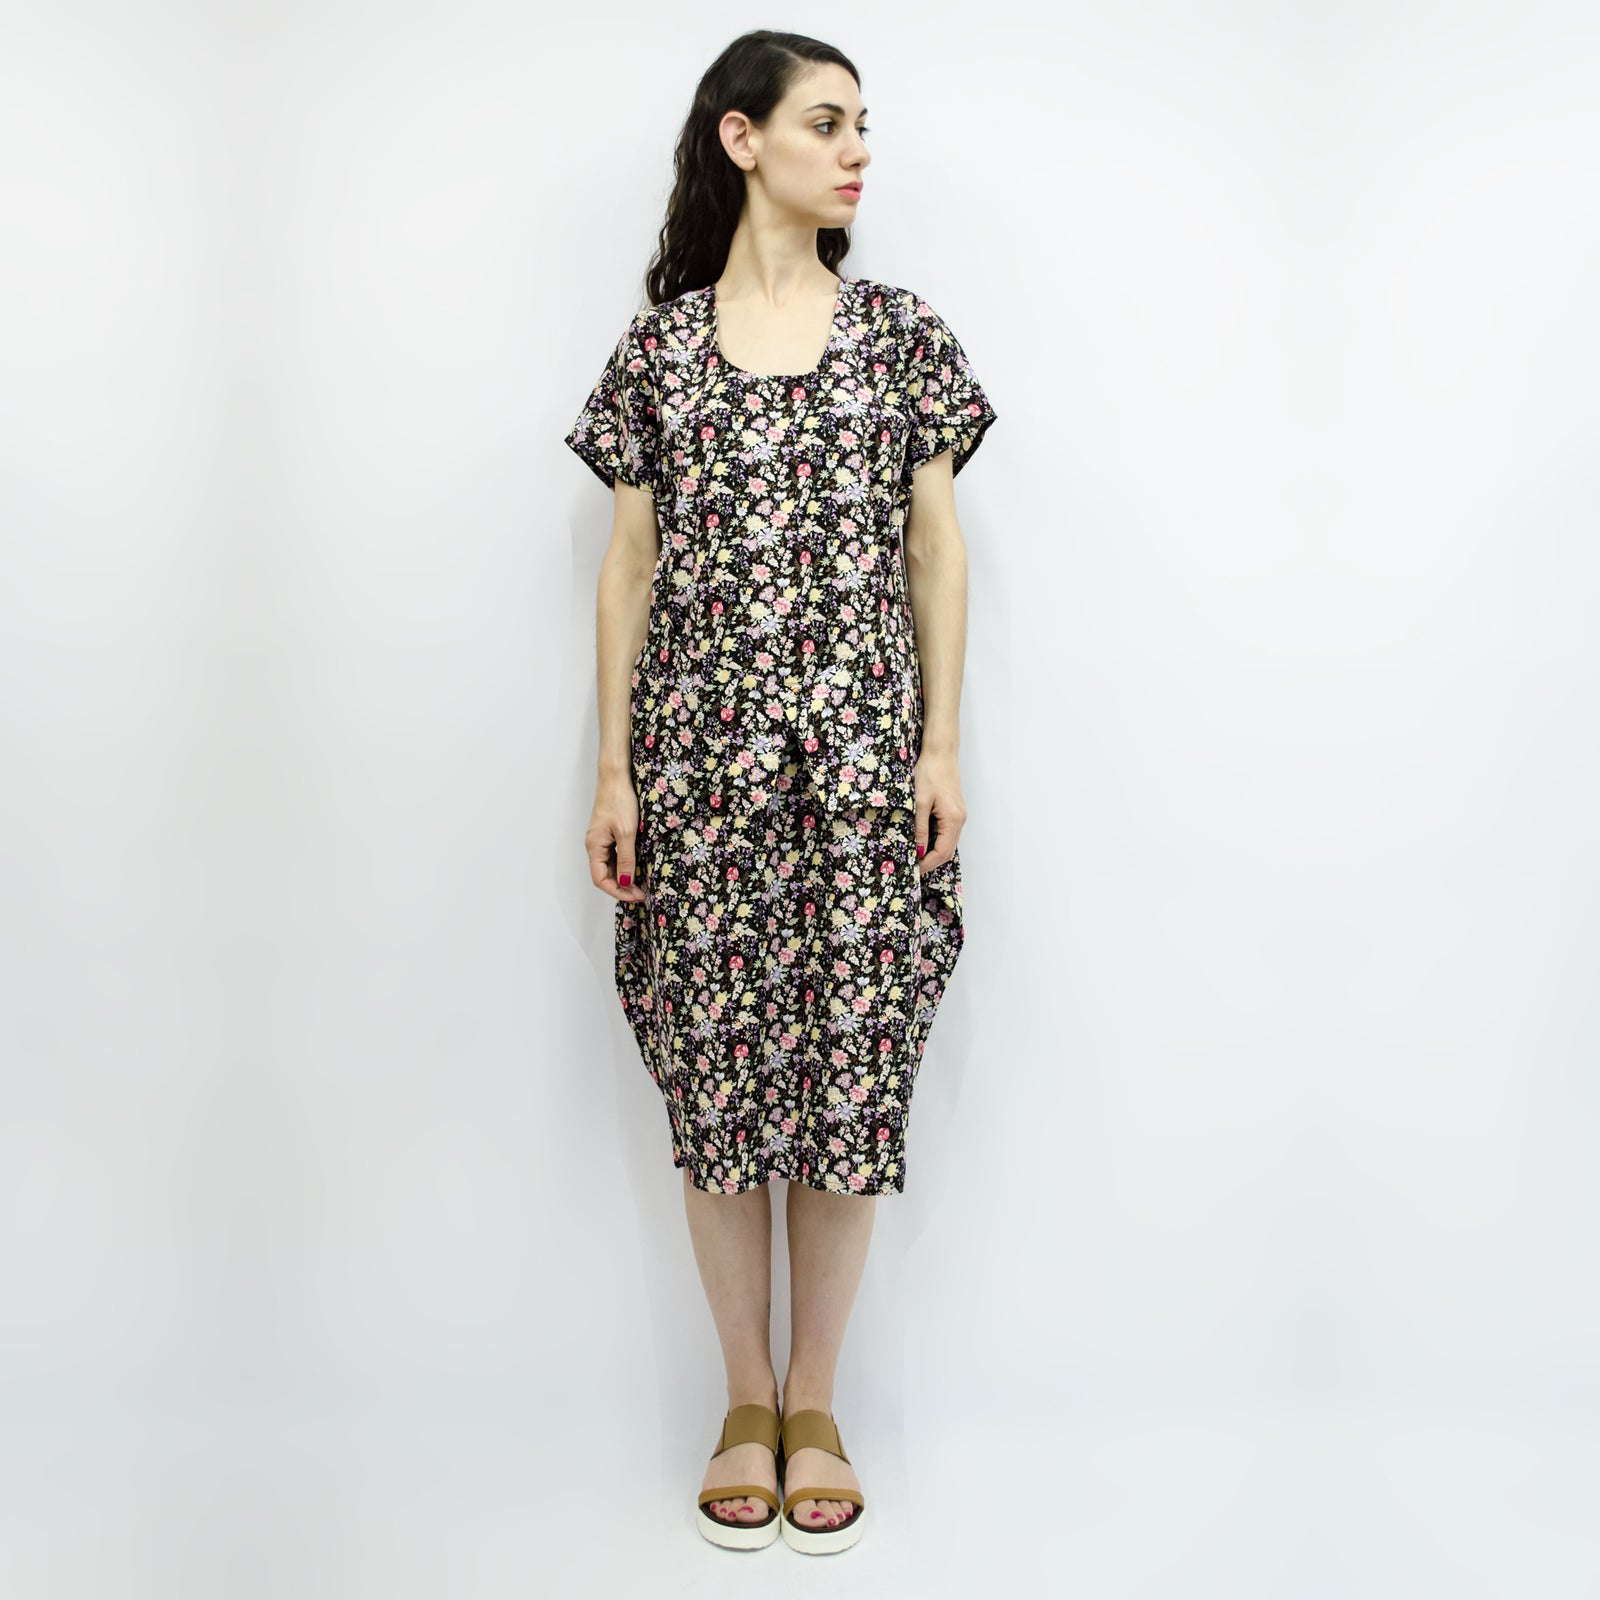 Dress Love Pocket in Cotton Black Floral